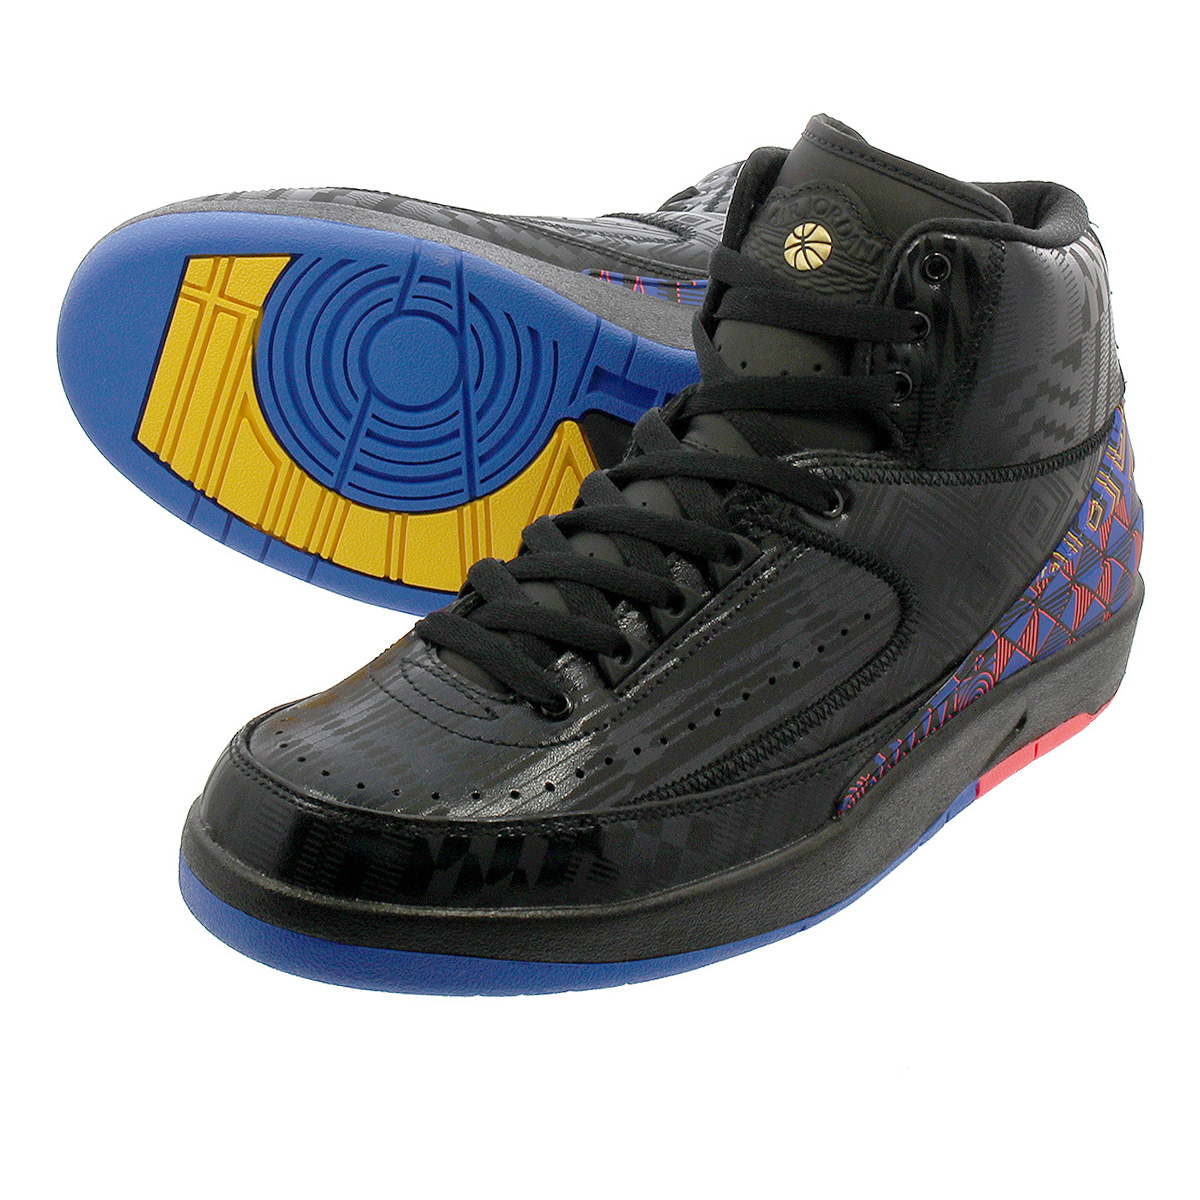 NIKE AIR JORDAN 2 RETRO耐吉空氣喬丹2重新流行BLACK/METALLIC GOLD bq7618-007